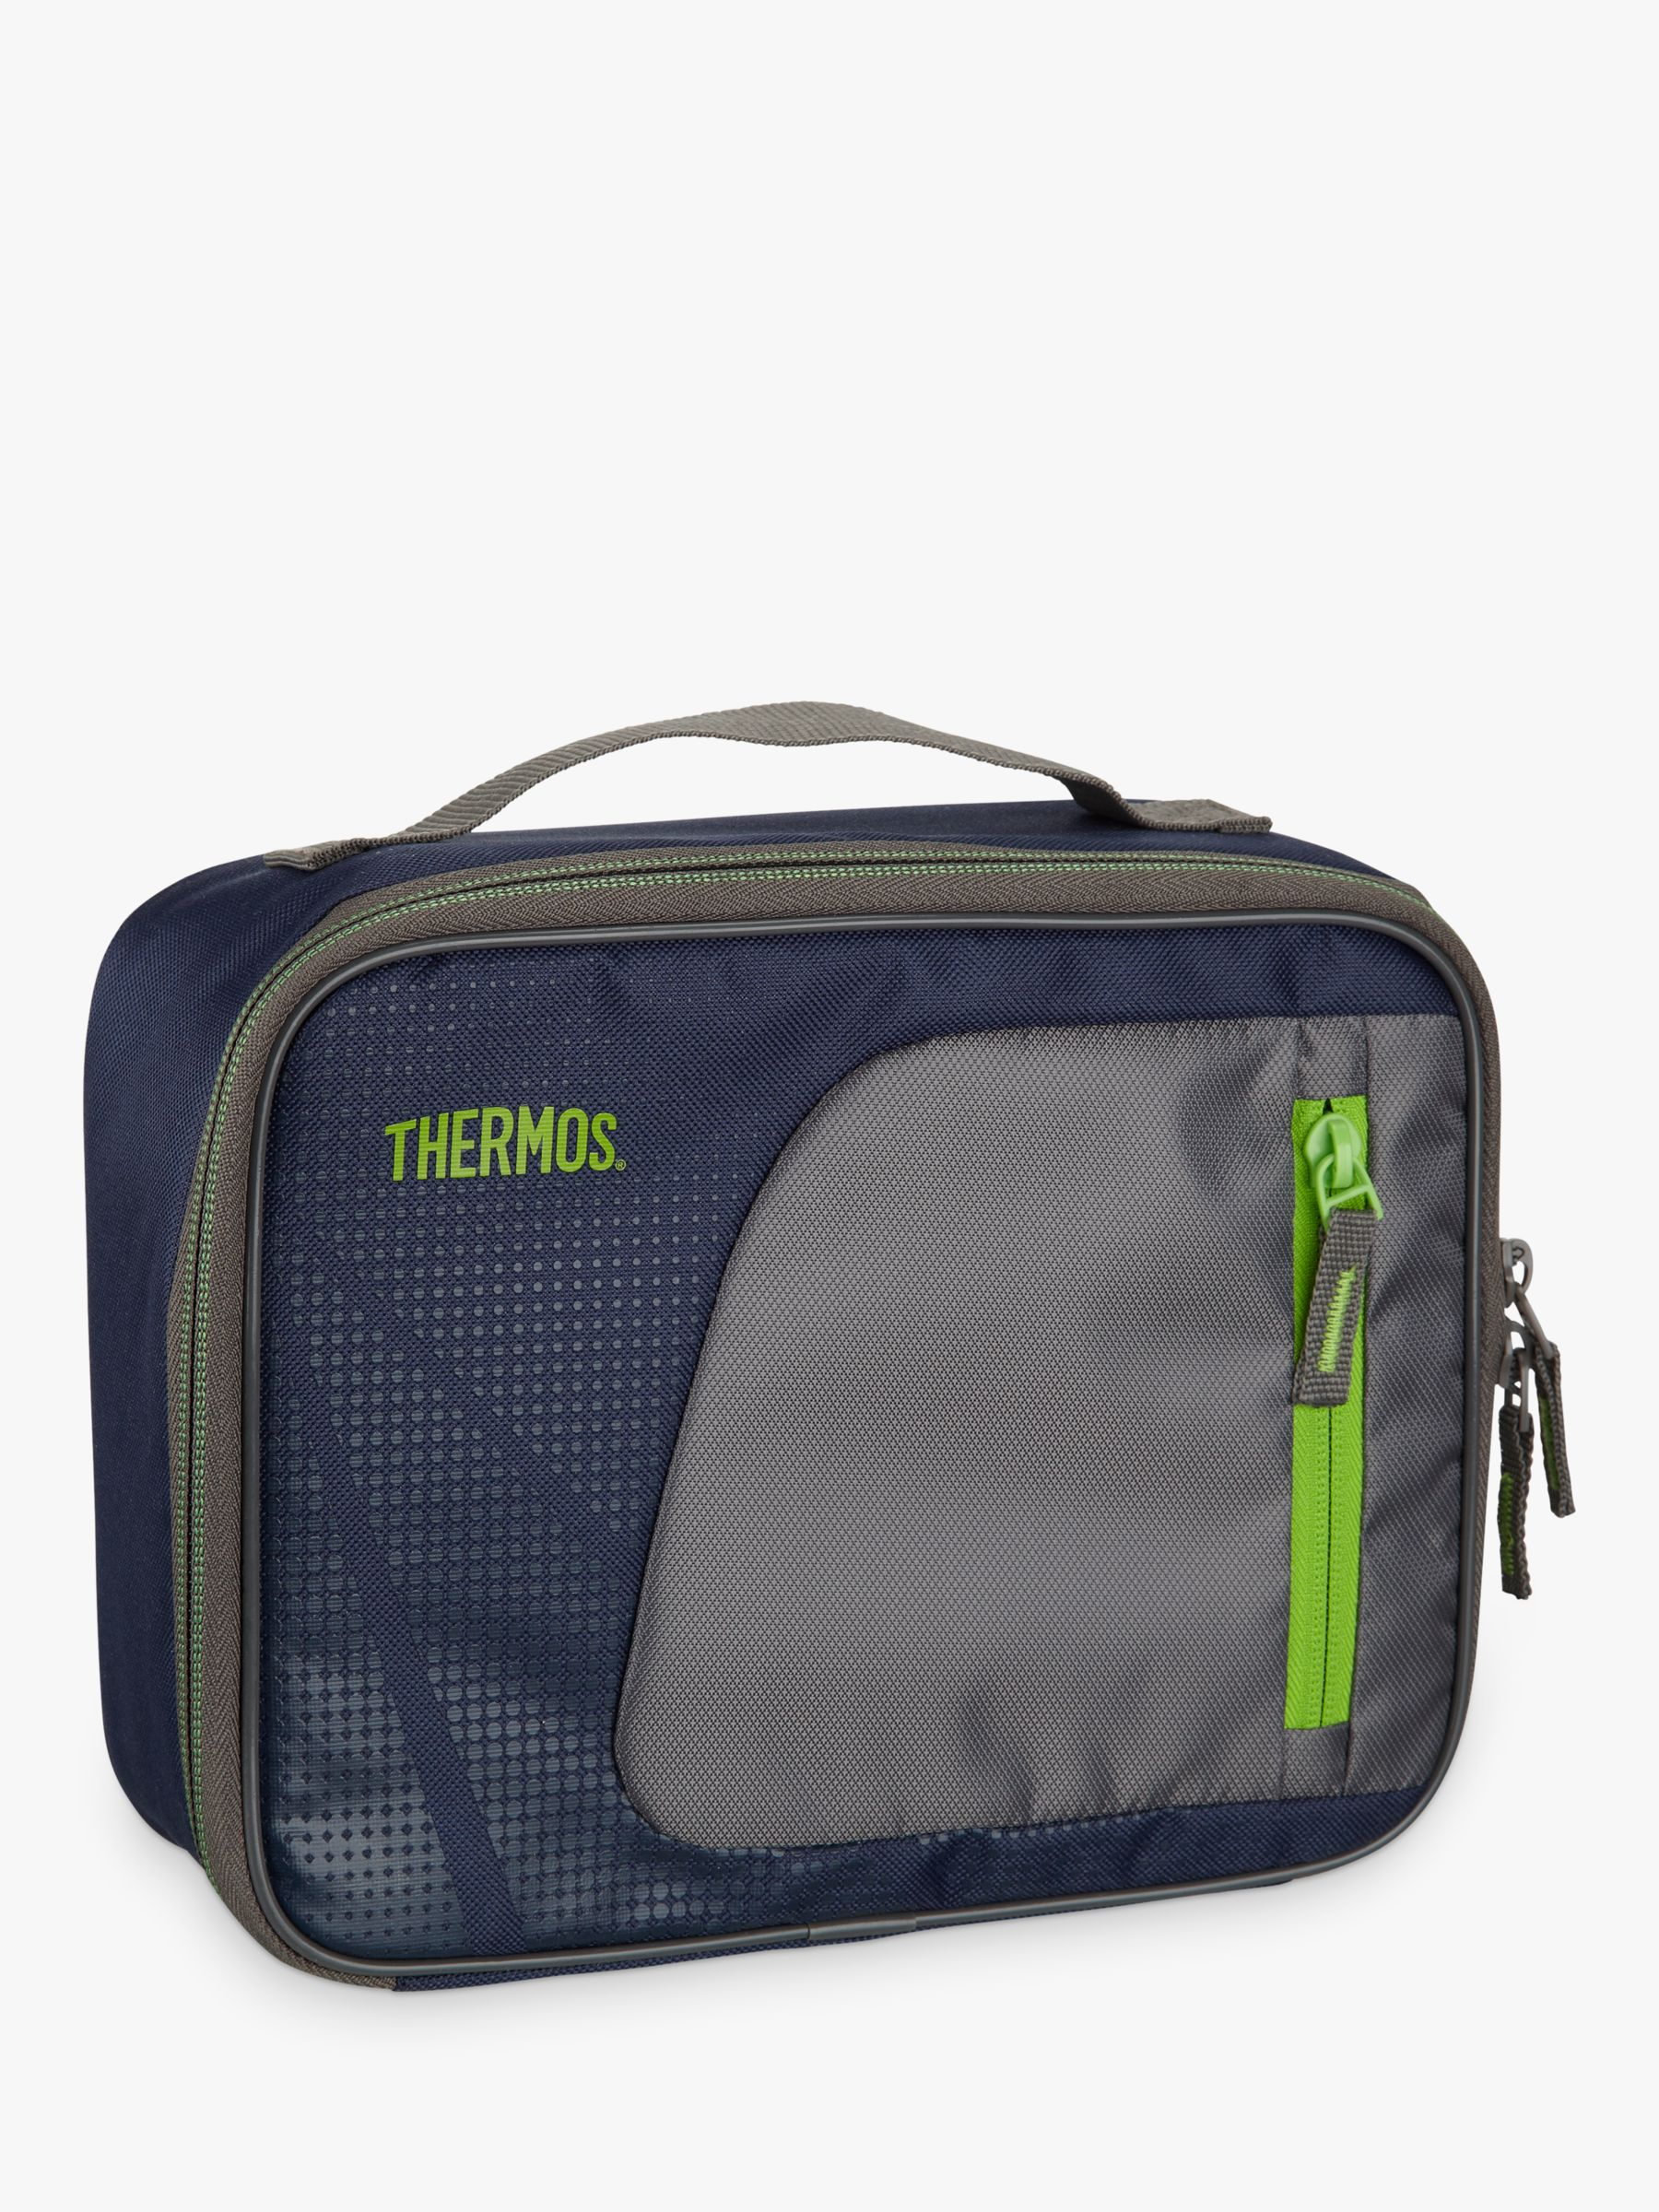 Thermos Thermos Lunch Bag